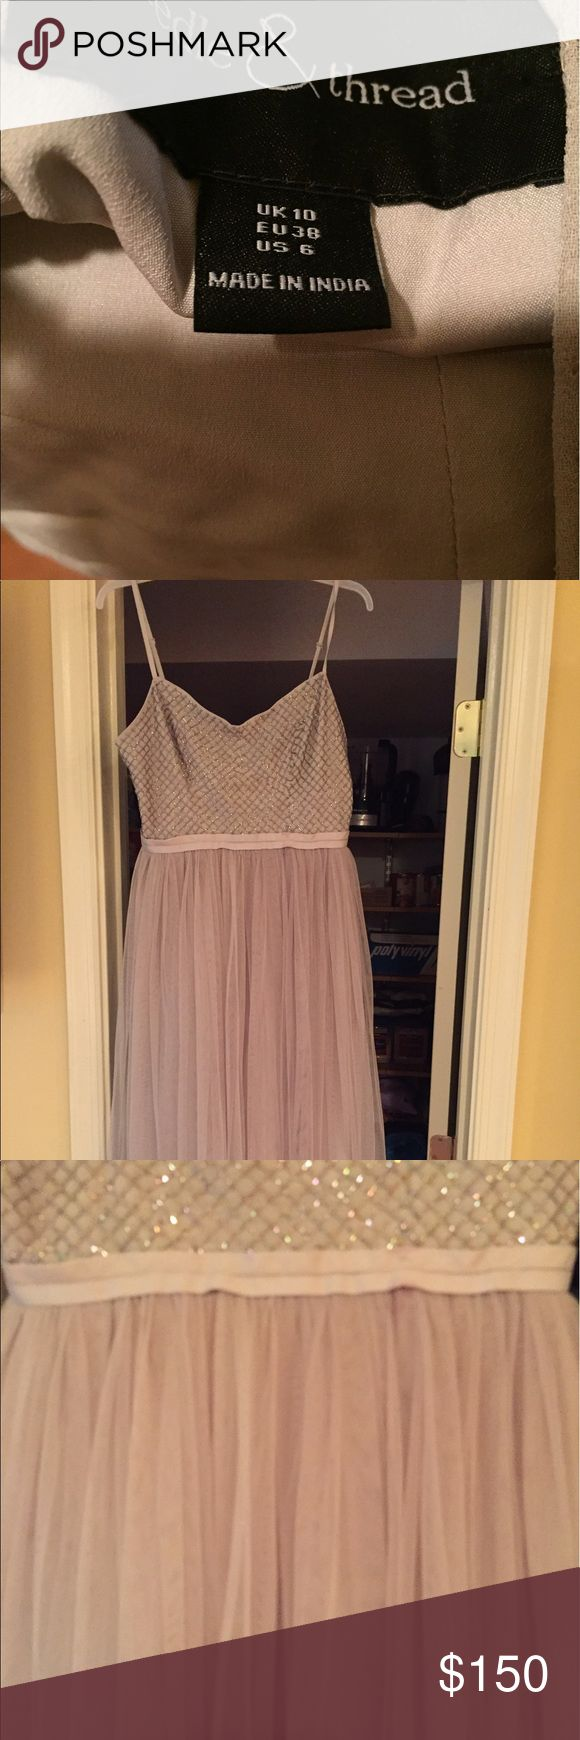 Beautiful grey dress size 6 Needle and Thread brand. Only worn once to a wedding in May. Beautiful detail. Sparkly and famine. Size 6. Bought for $260. Asking $150. Needle & Thread Dresses Midi